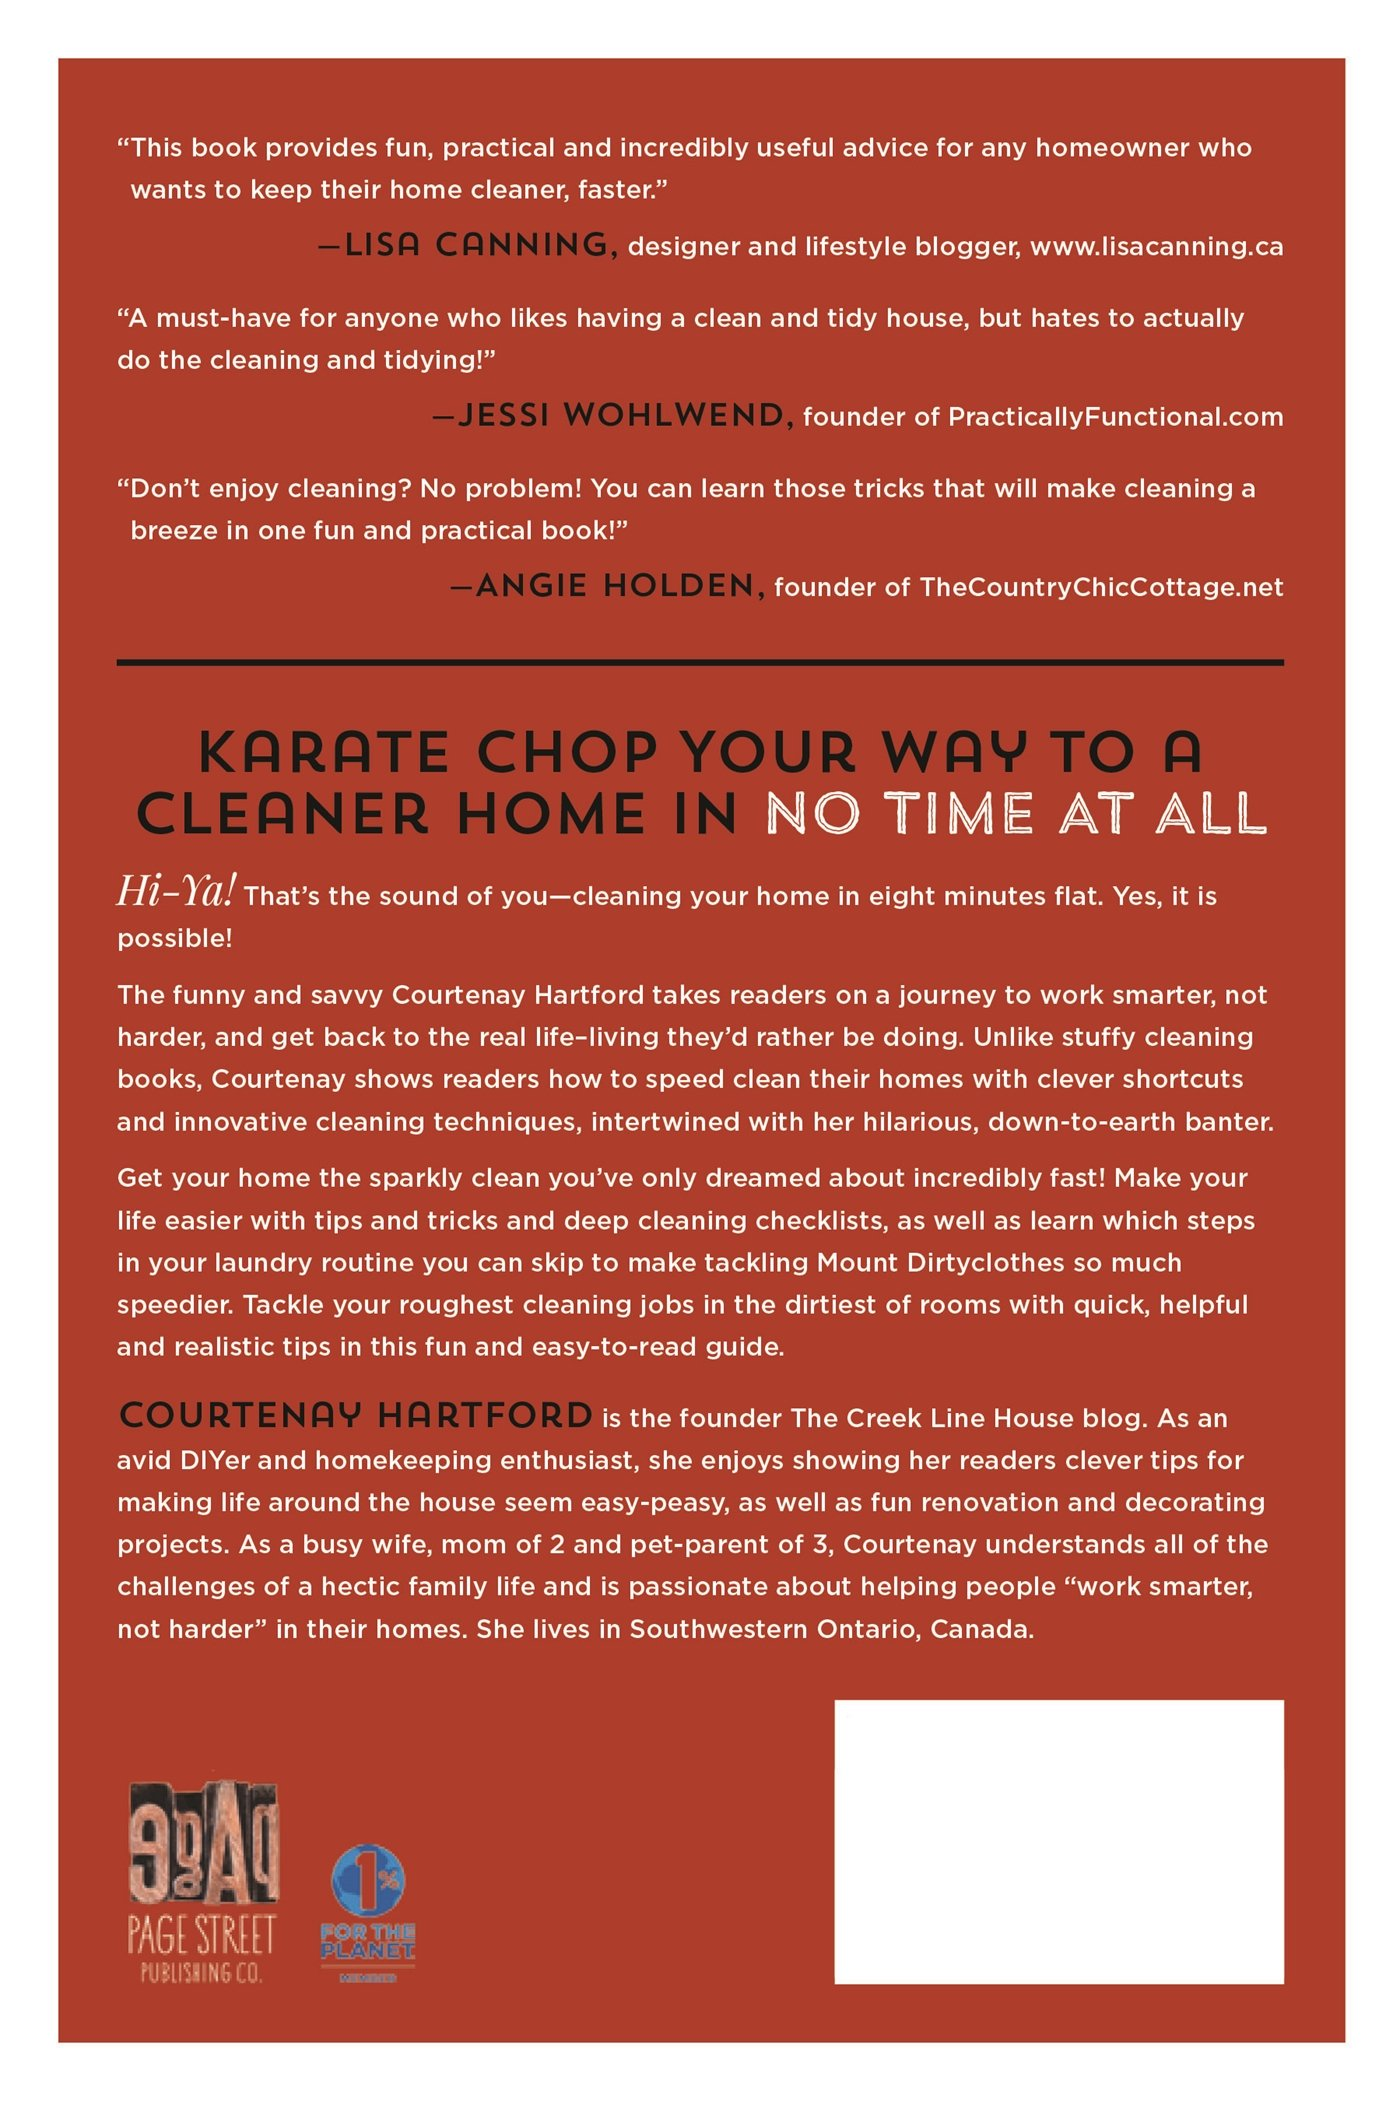 the cleaning ninja how to clean your home in 8 minutes flat and